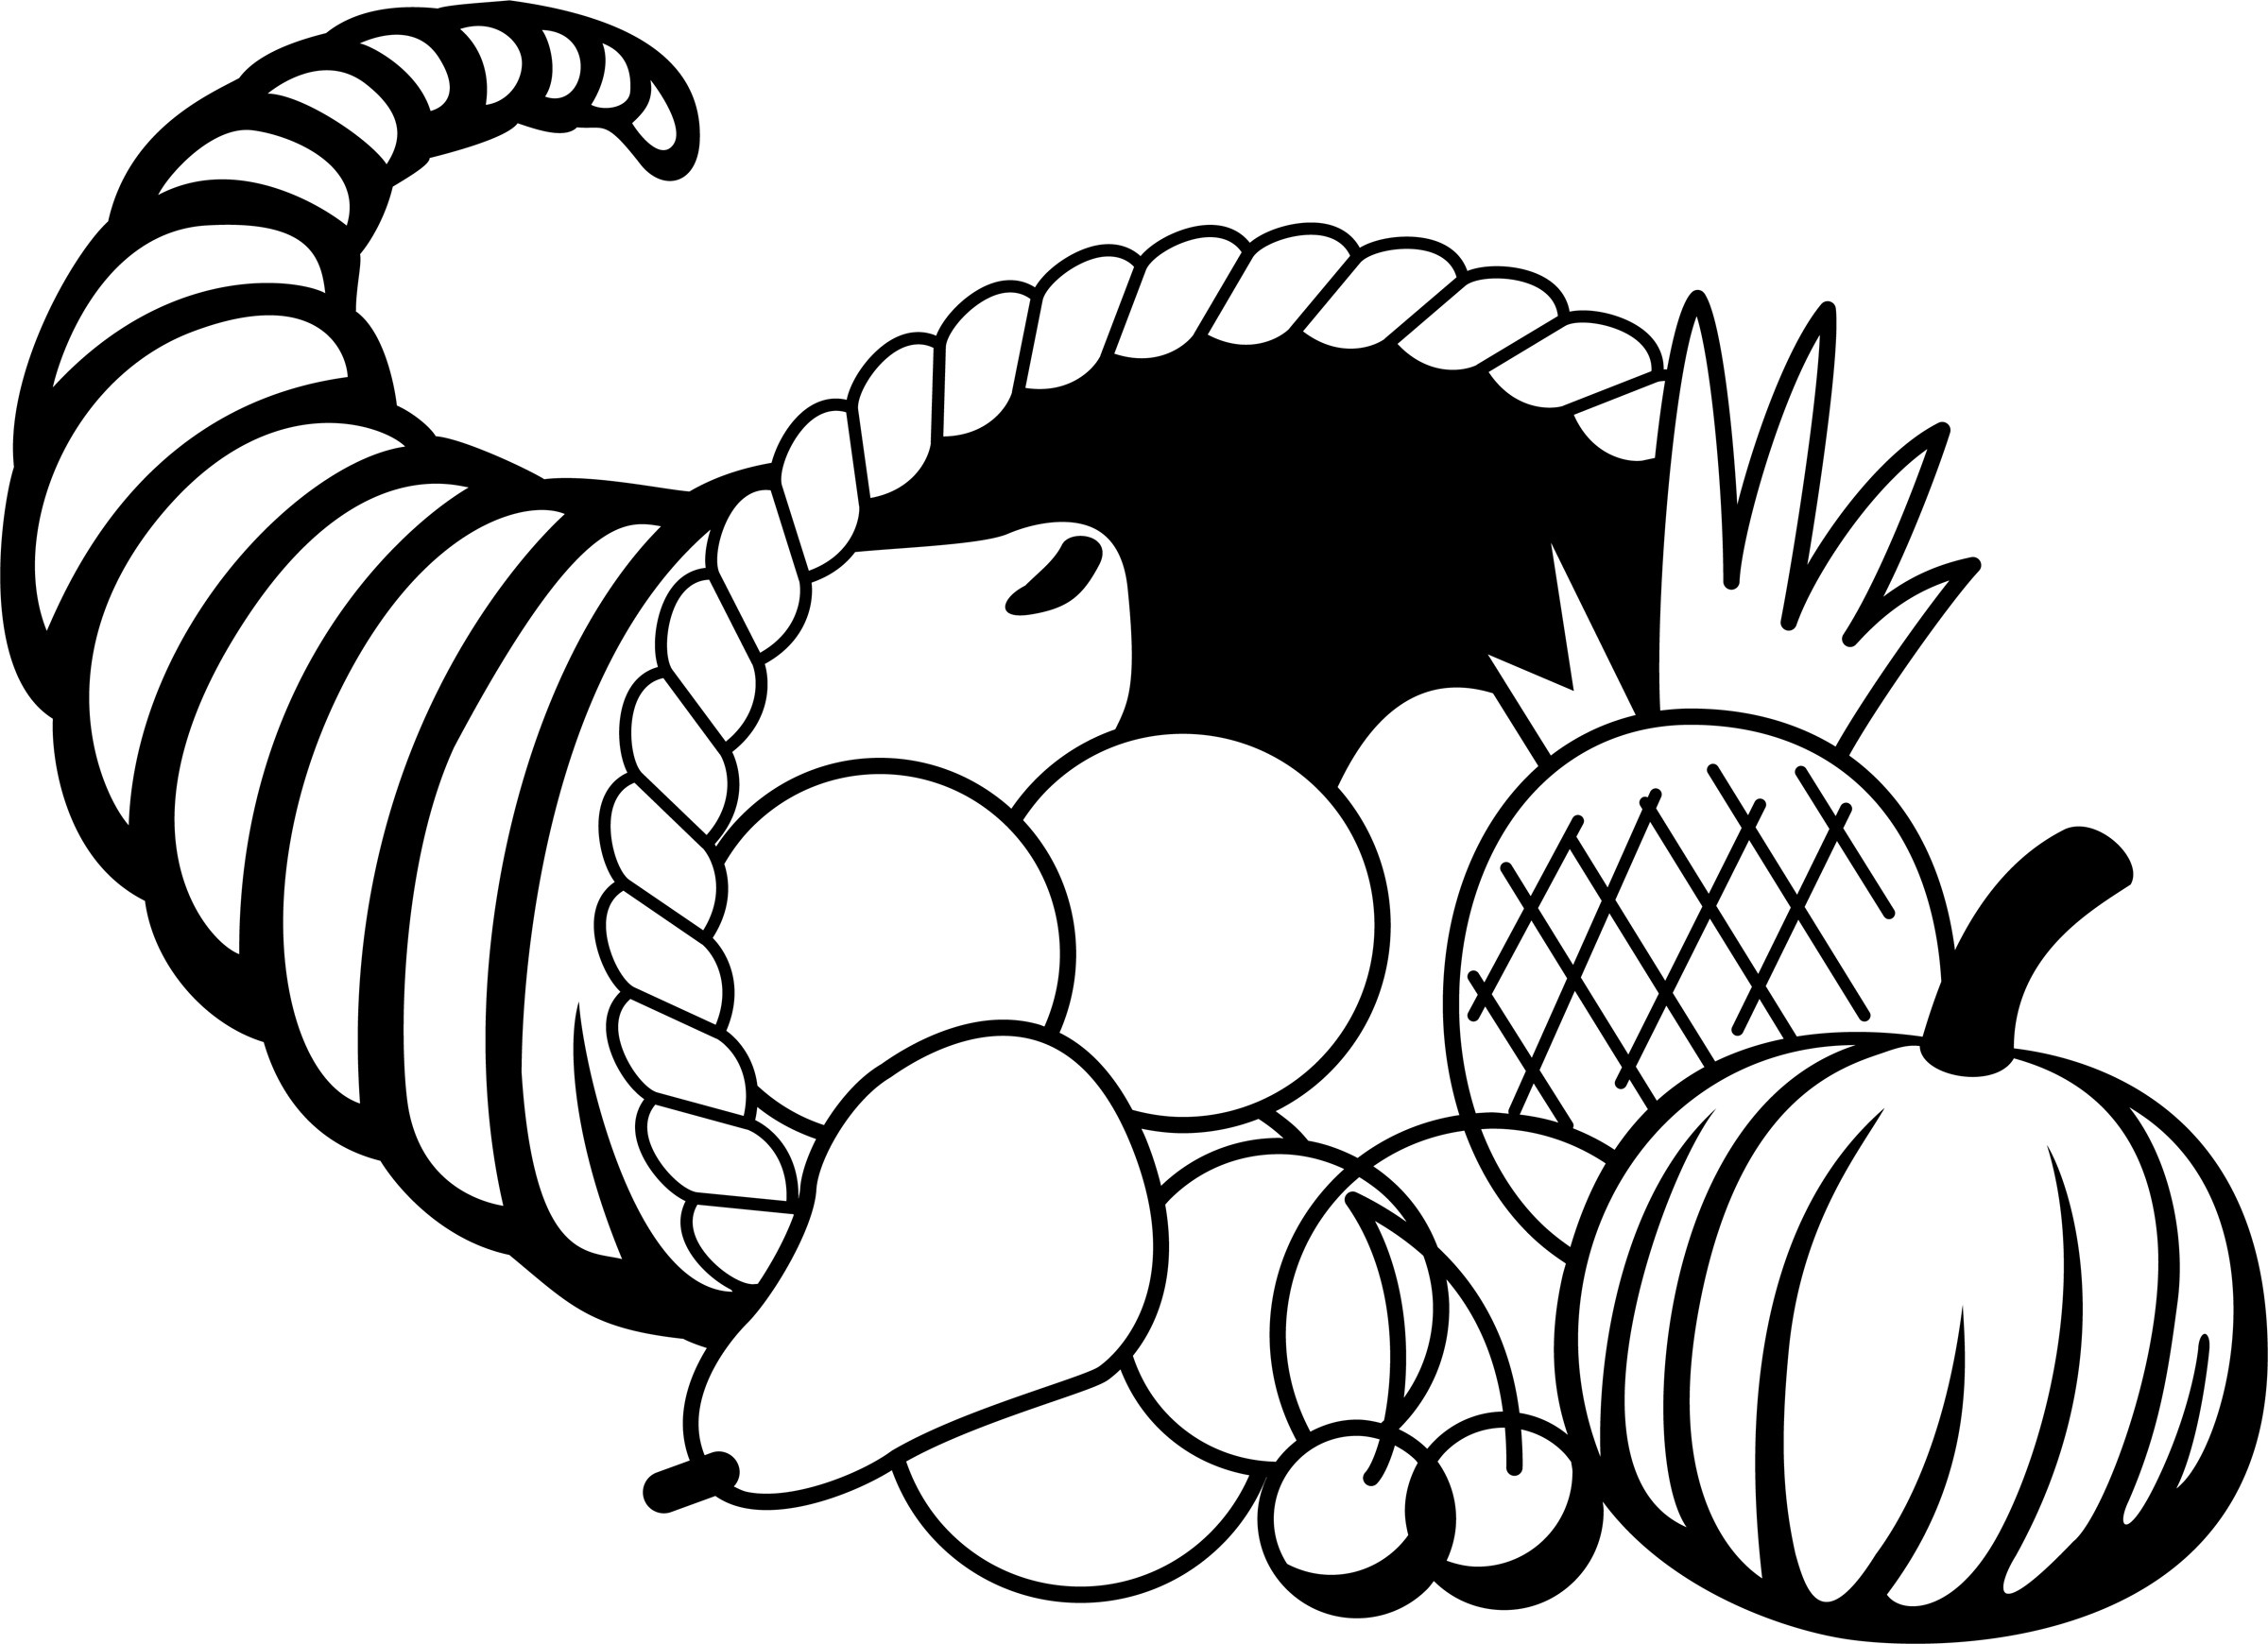 picture of cornucopia to color cornucopia clipart coloring pages cornucopia coloring to of color picture cornucopia